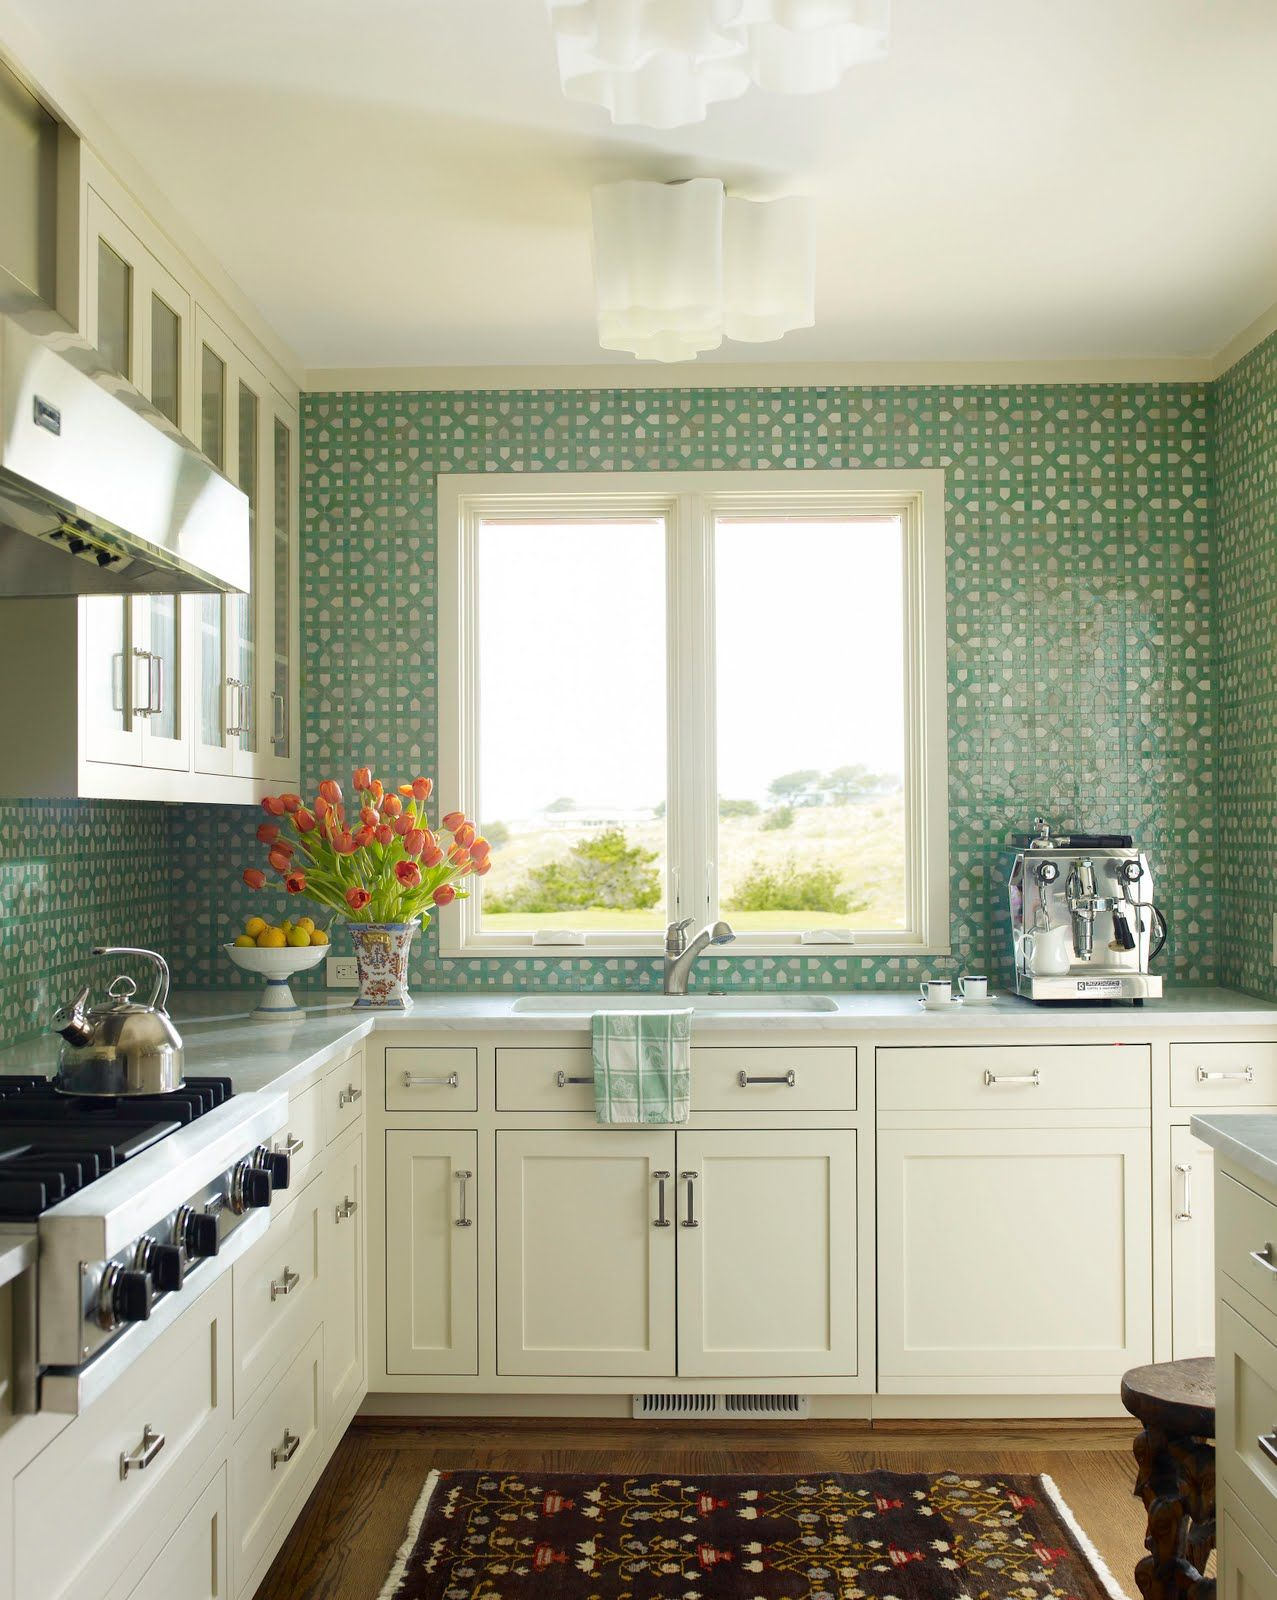 Moroccan Style Kitchen Tiles Aqua Green Tile Backsplash Moroccan Inspired Extend The Tile All